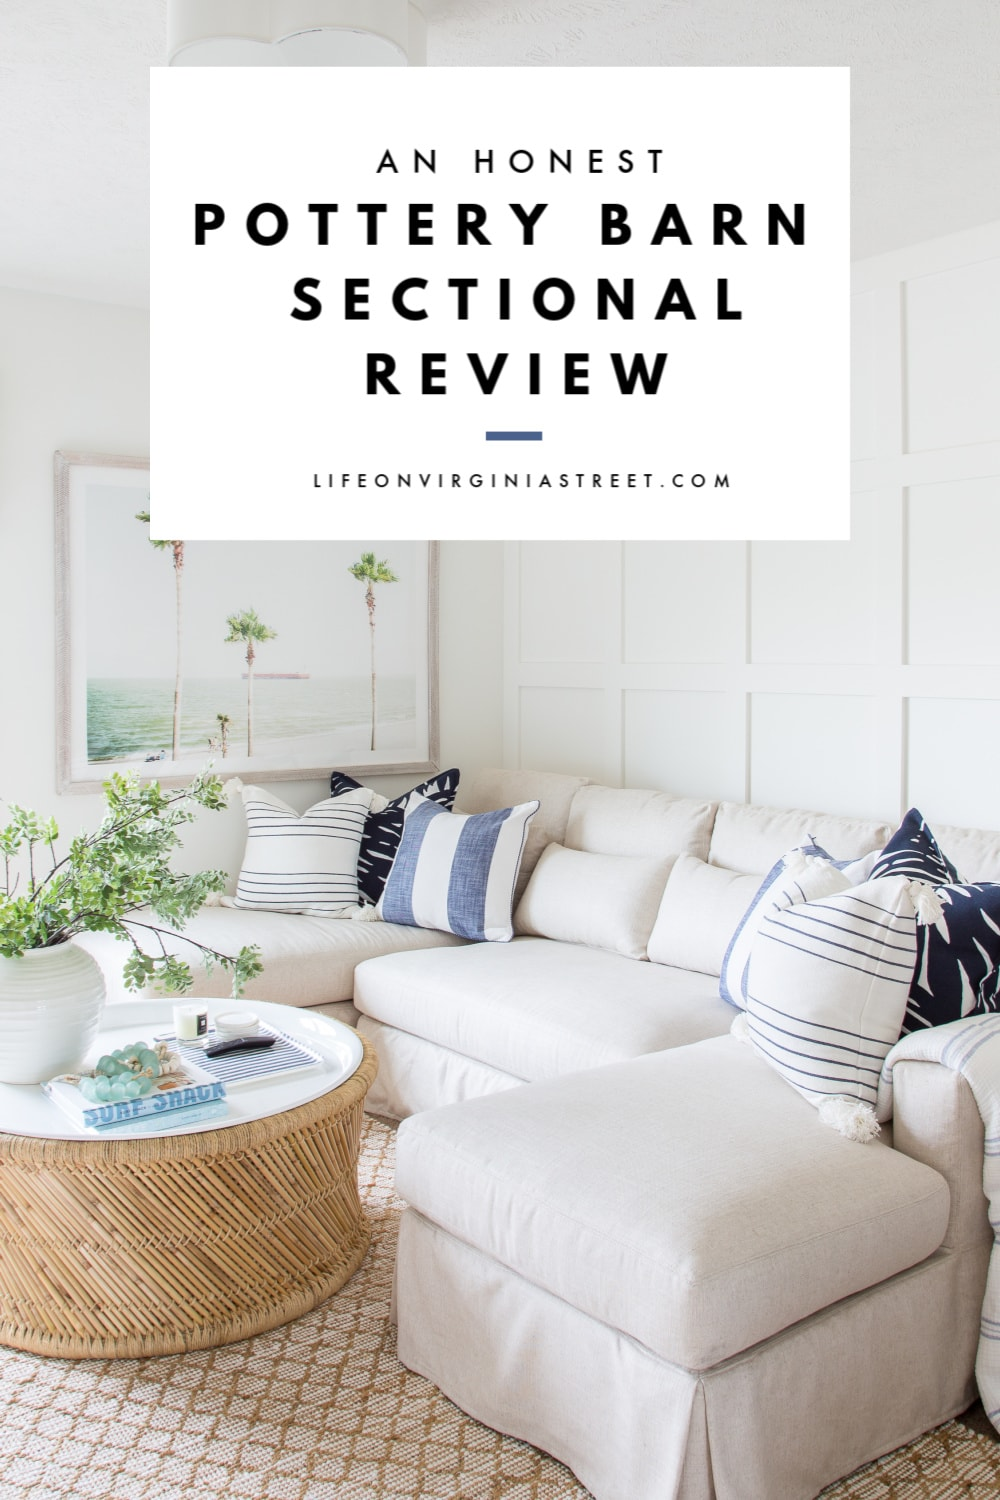 pottery barn sectional review life on